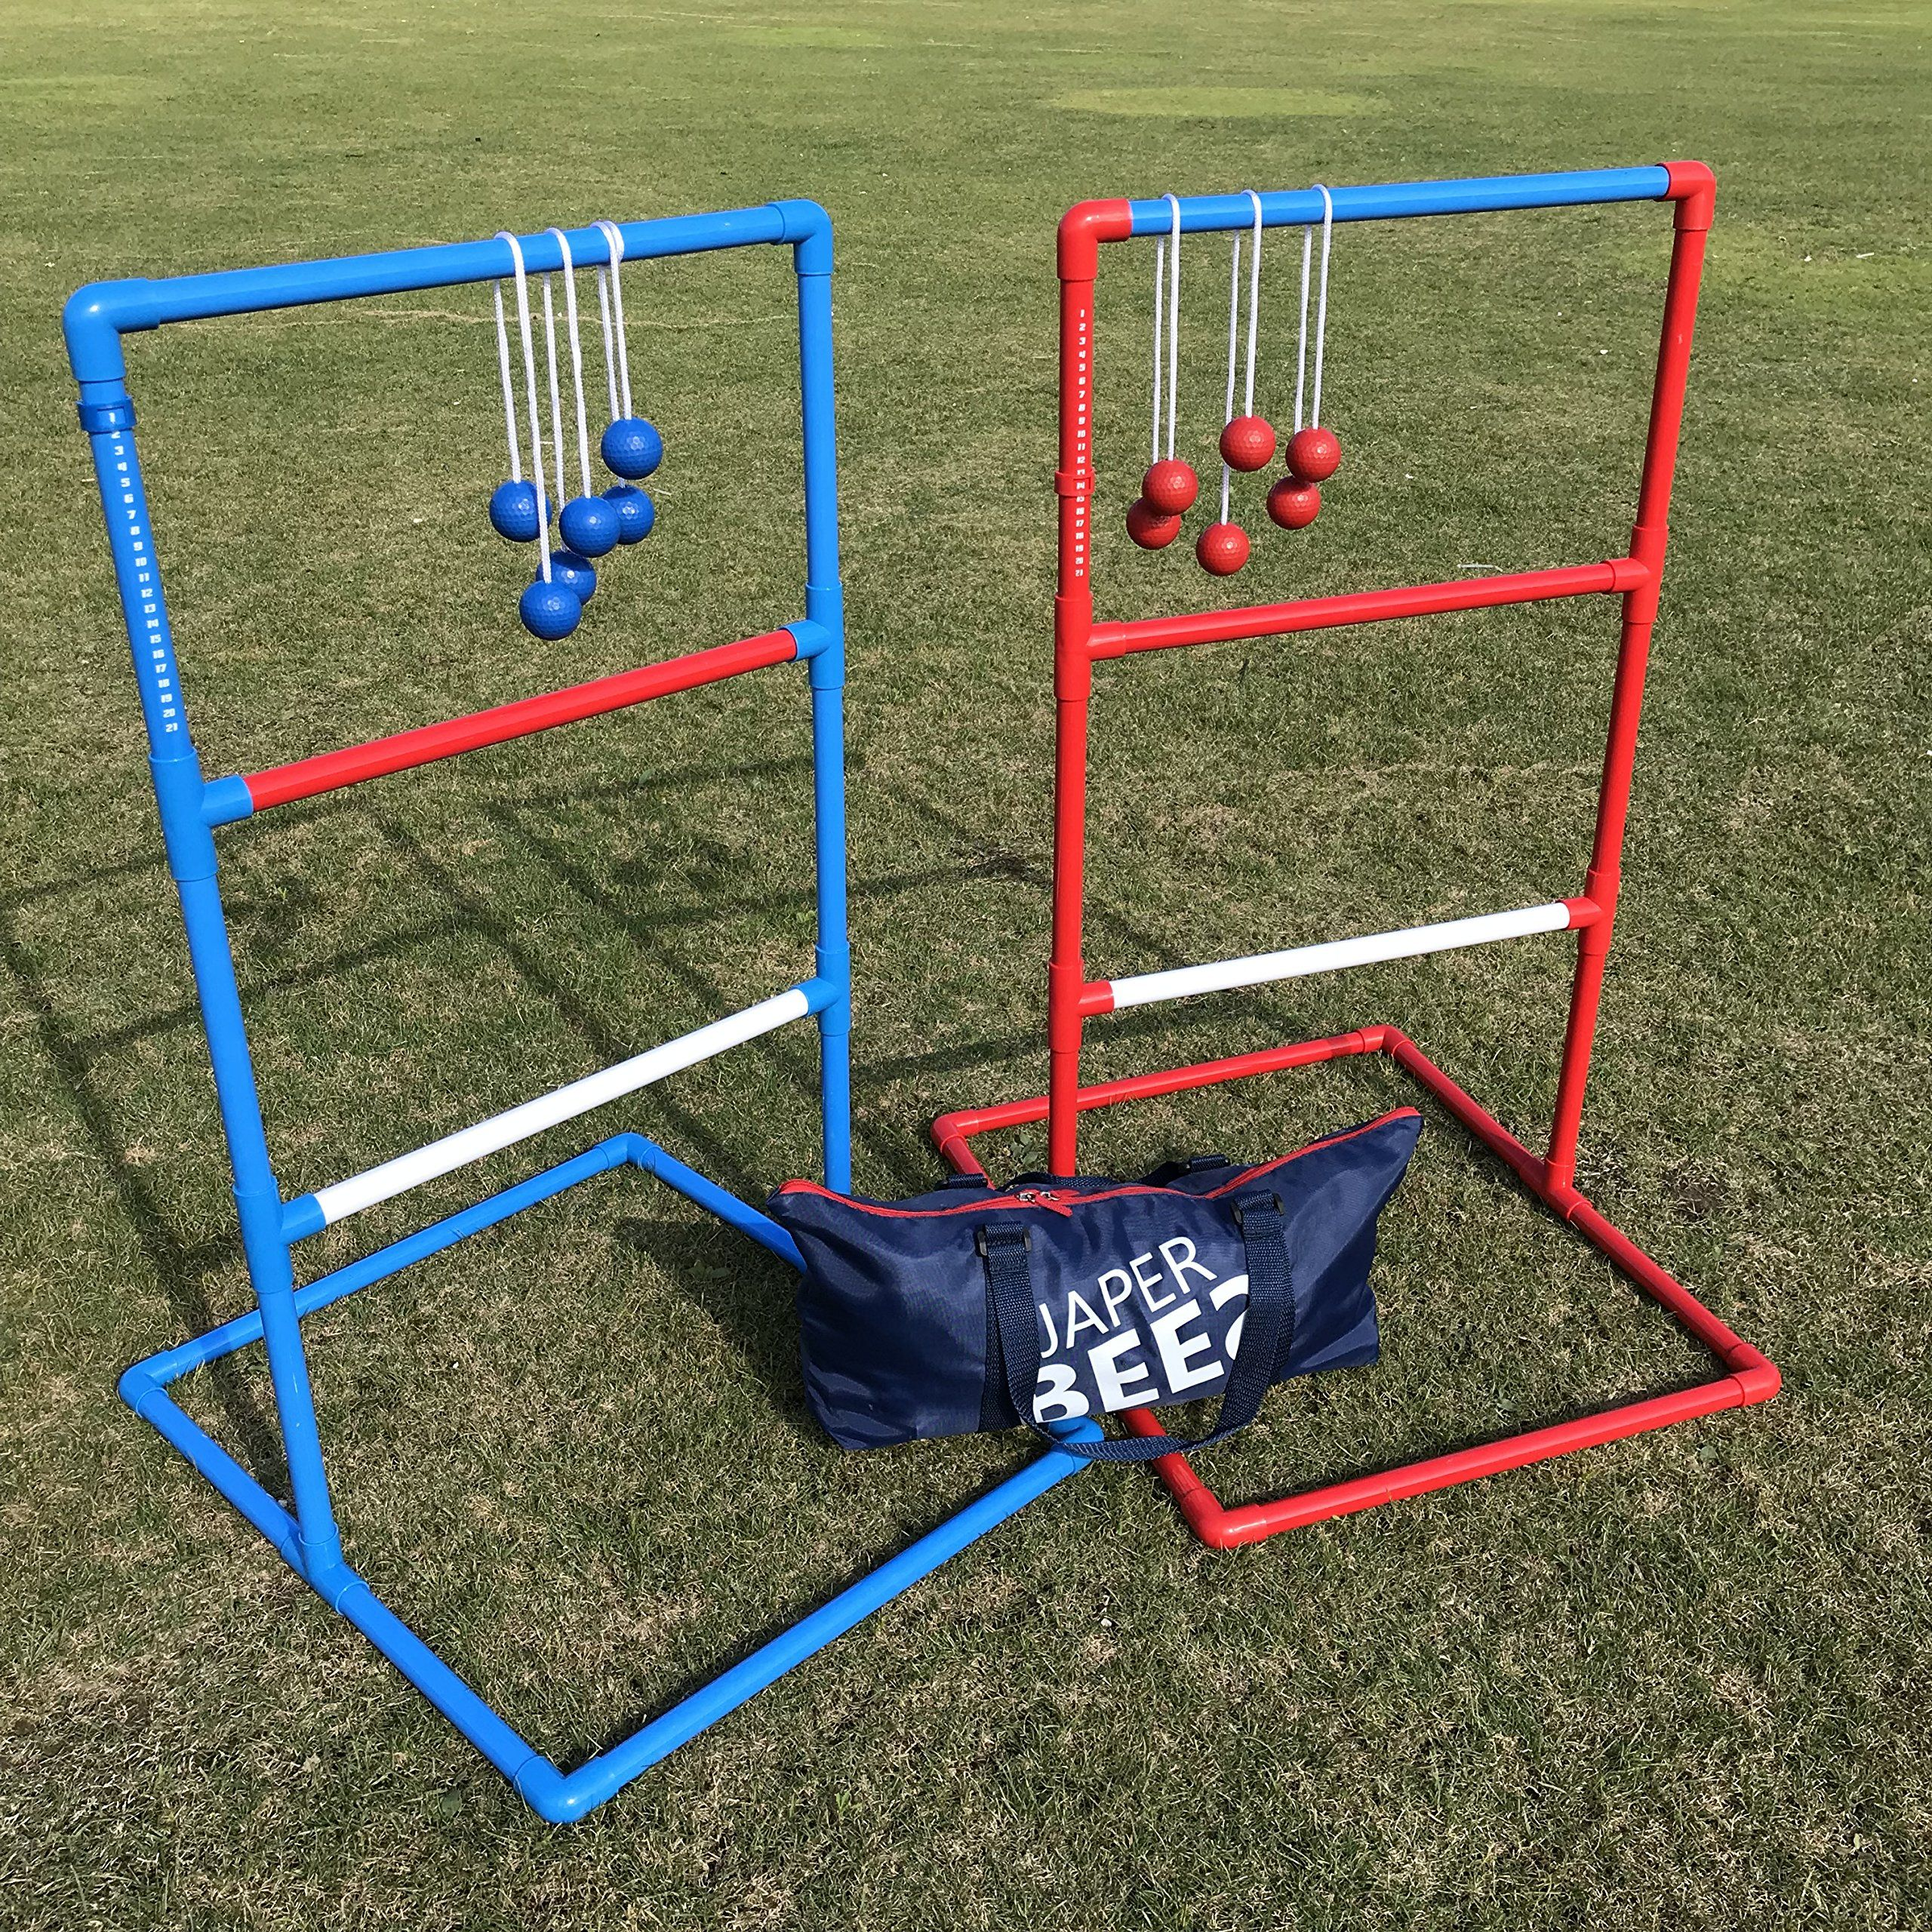 Golf Balls Japer Bees Premium Rope Ladder Golf Toss Yard Game Blongo Bolo Ball Lawn Game With Thickest Pipes 6 Rea Ladder Ball Bolo Ball Outdoor Ball Games